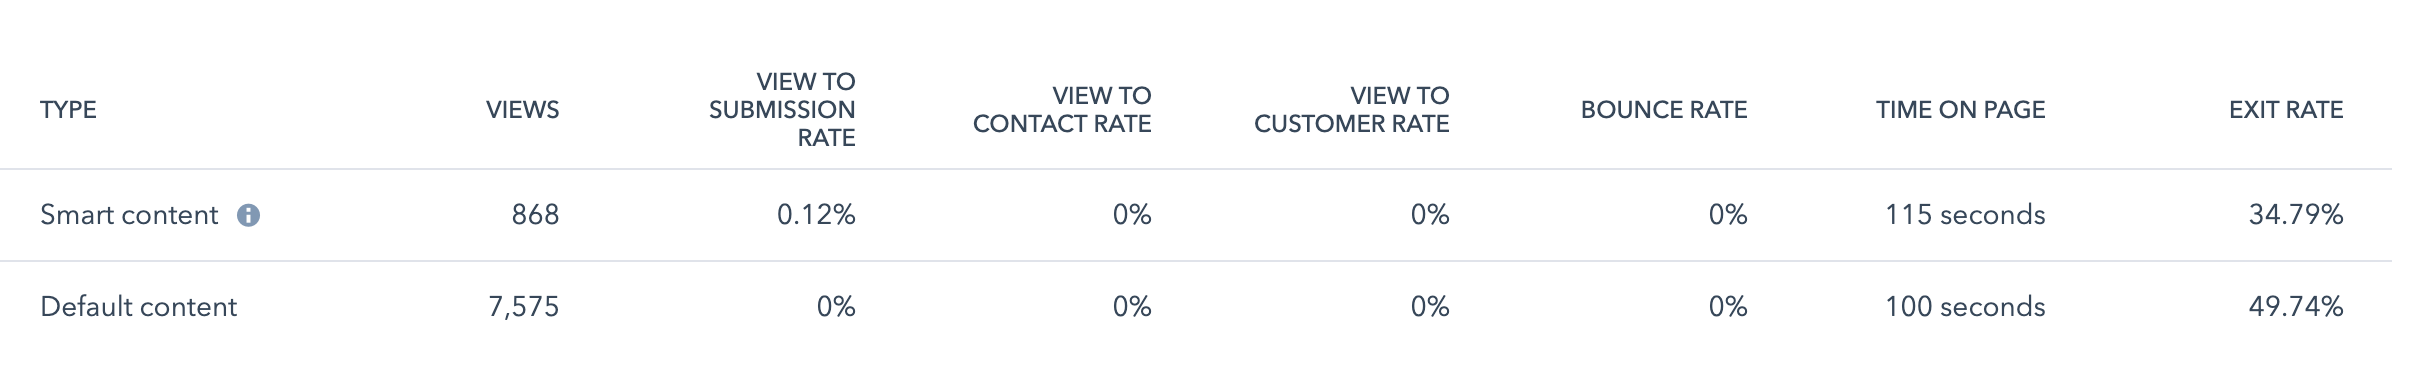 homepage bounce rate case study impulse creative first example